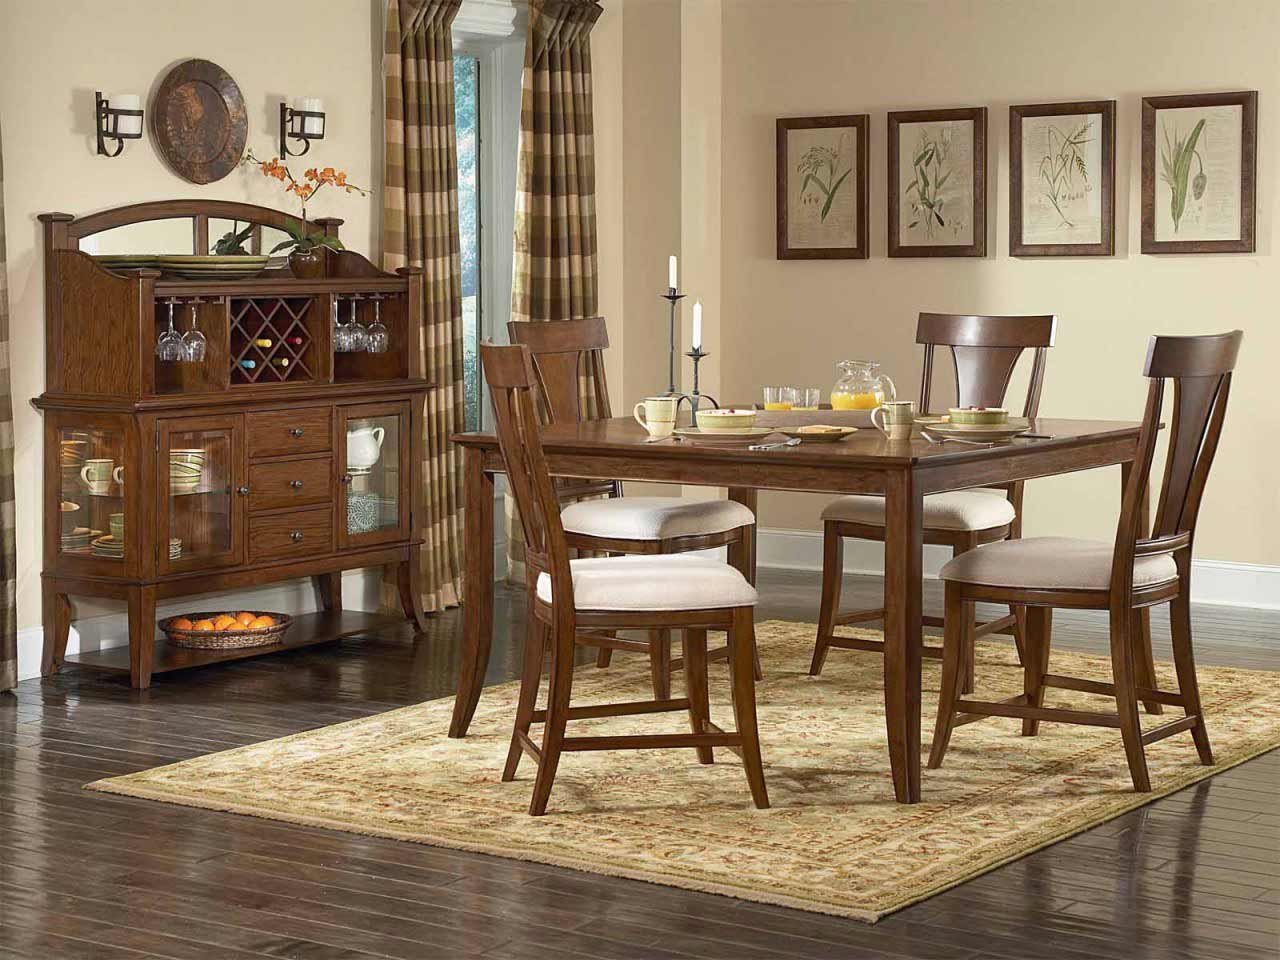 Kathy Ireland Furniture Collection Feel The Home